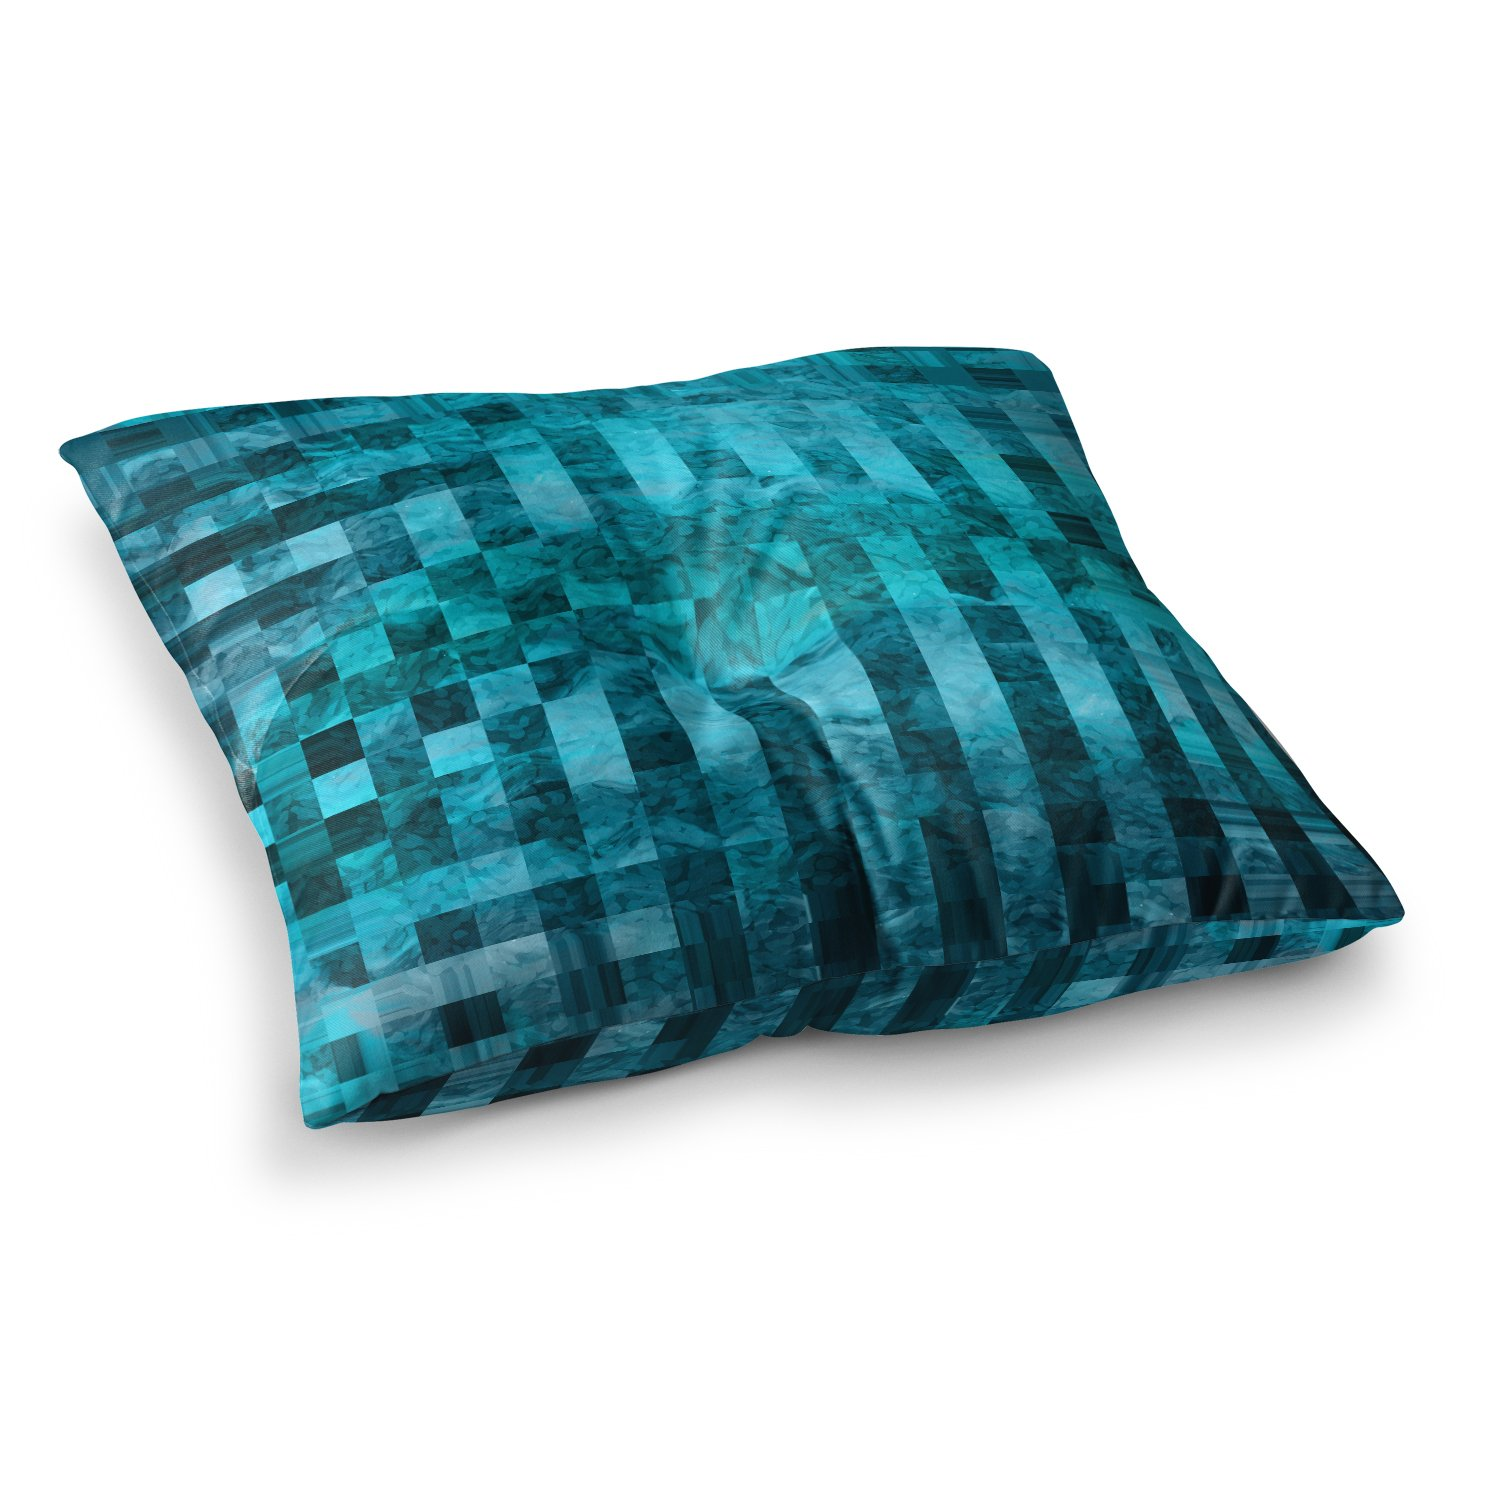 Kess InHouse Suzanne Carter Mosaic Ocean Blue Teal Pattern 23 x 23 Square Floor Pillow